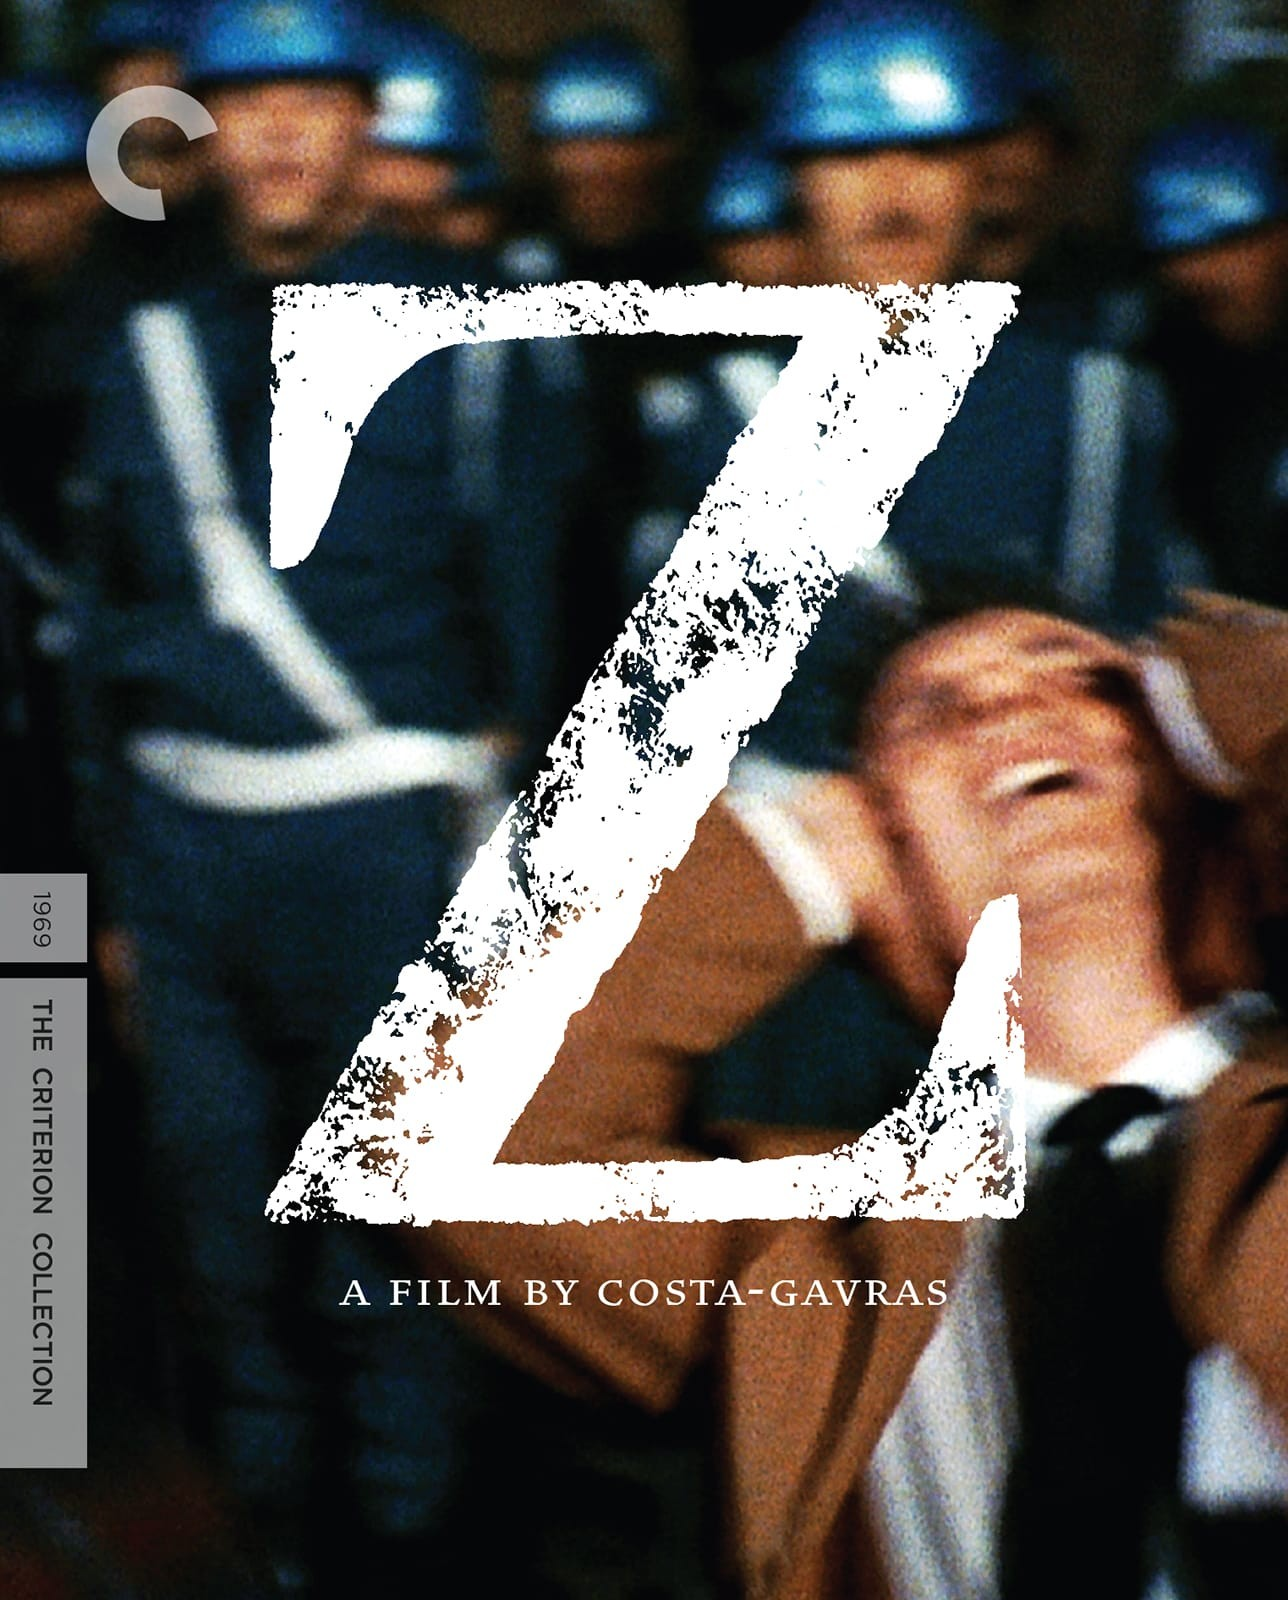 film z costa-gavras